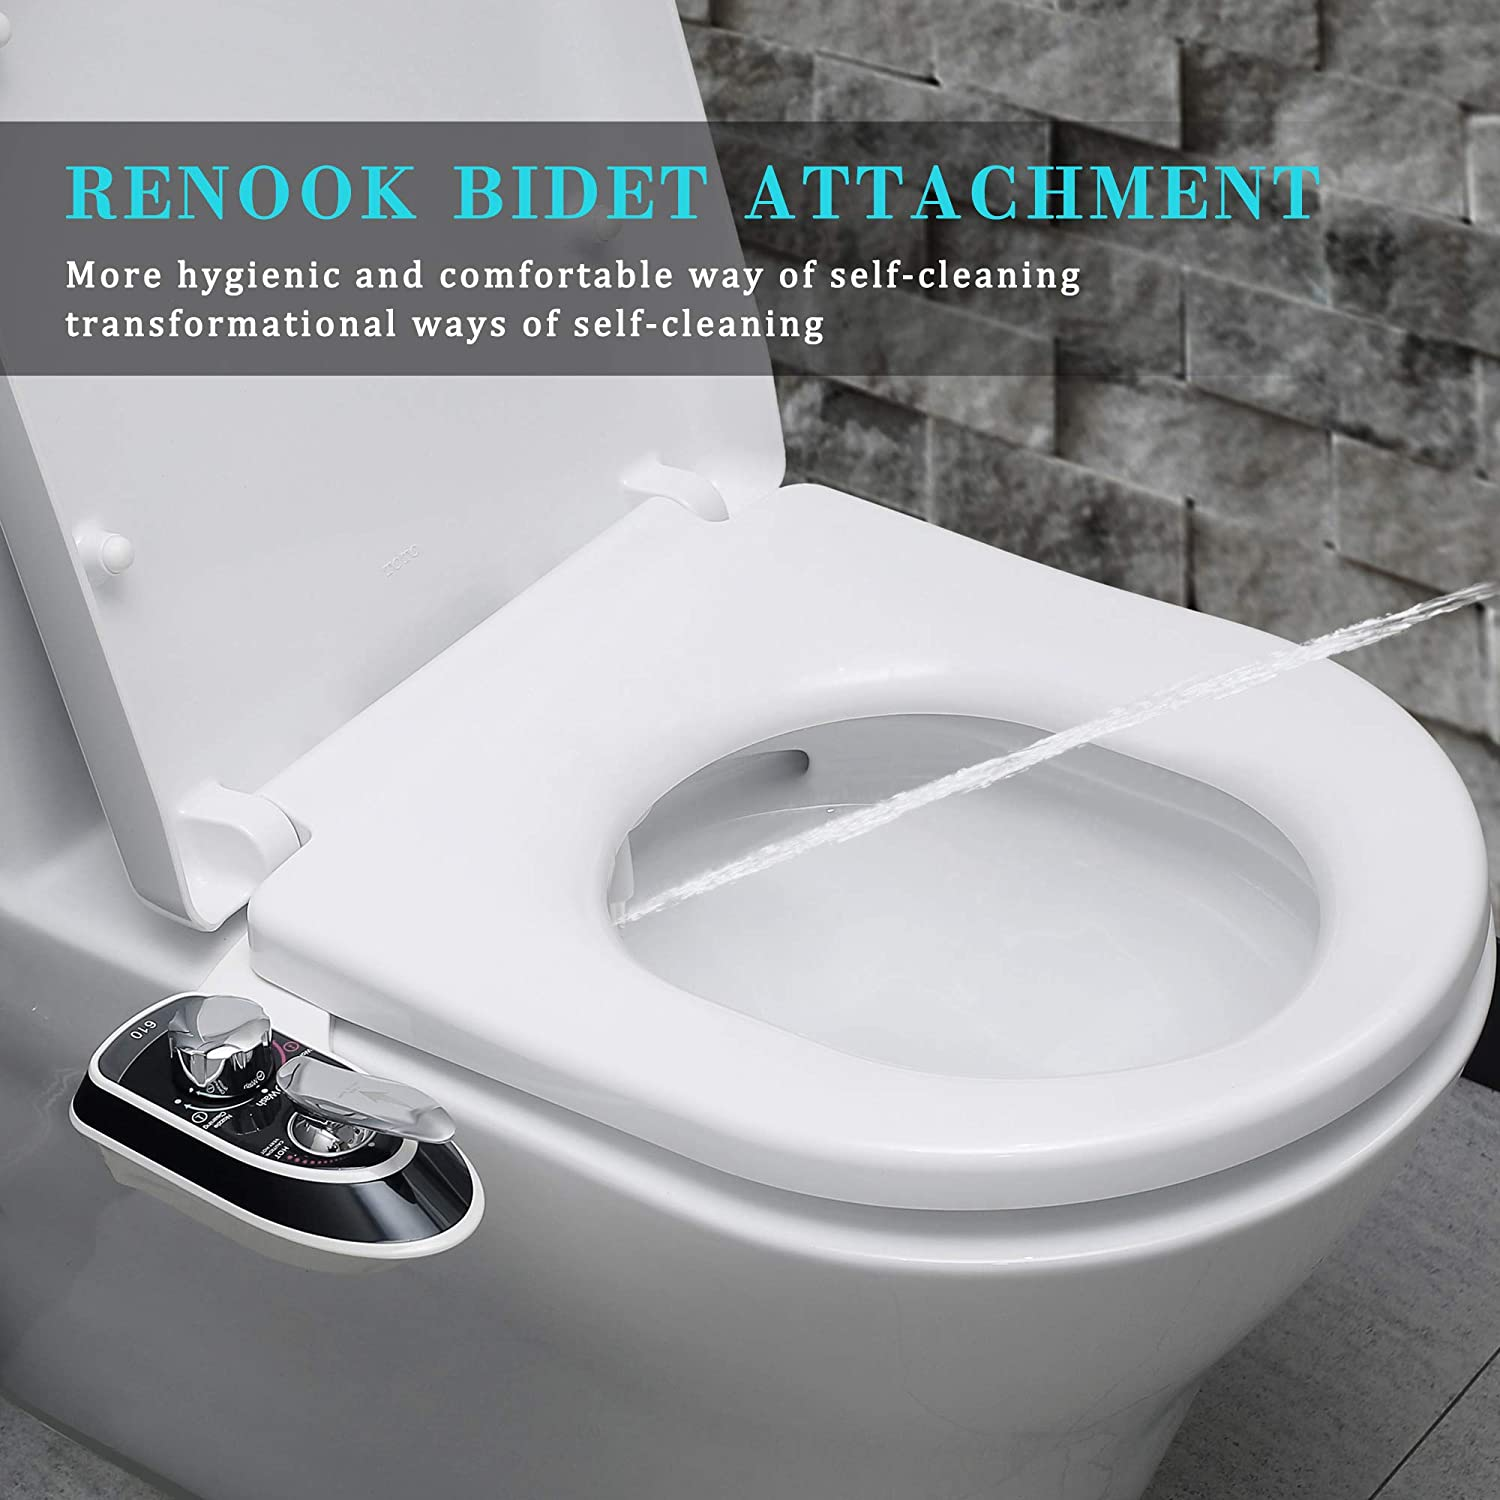 Free Amazon Promo Code 2020 for Bidet Attachment for Toilet-Self Cleaning